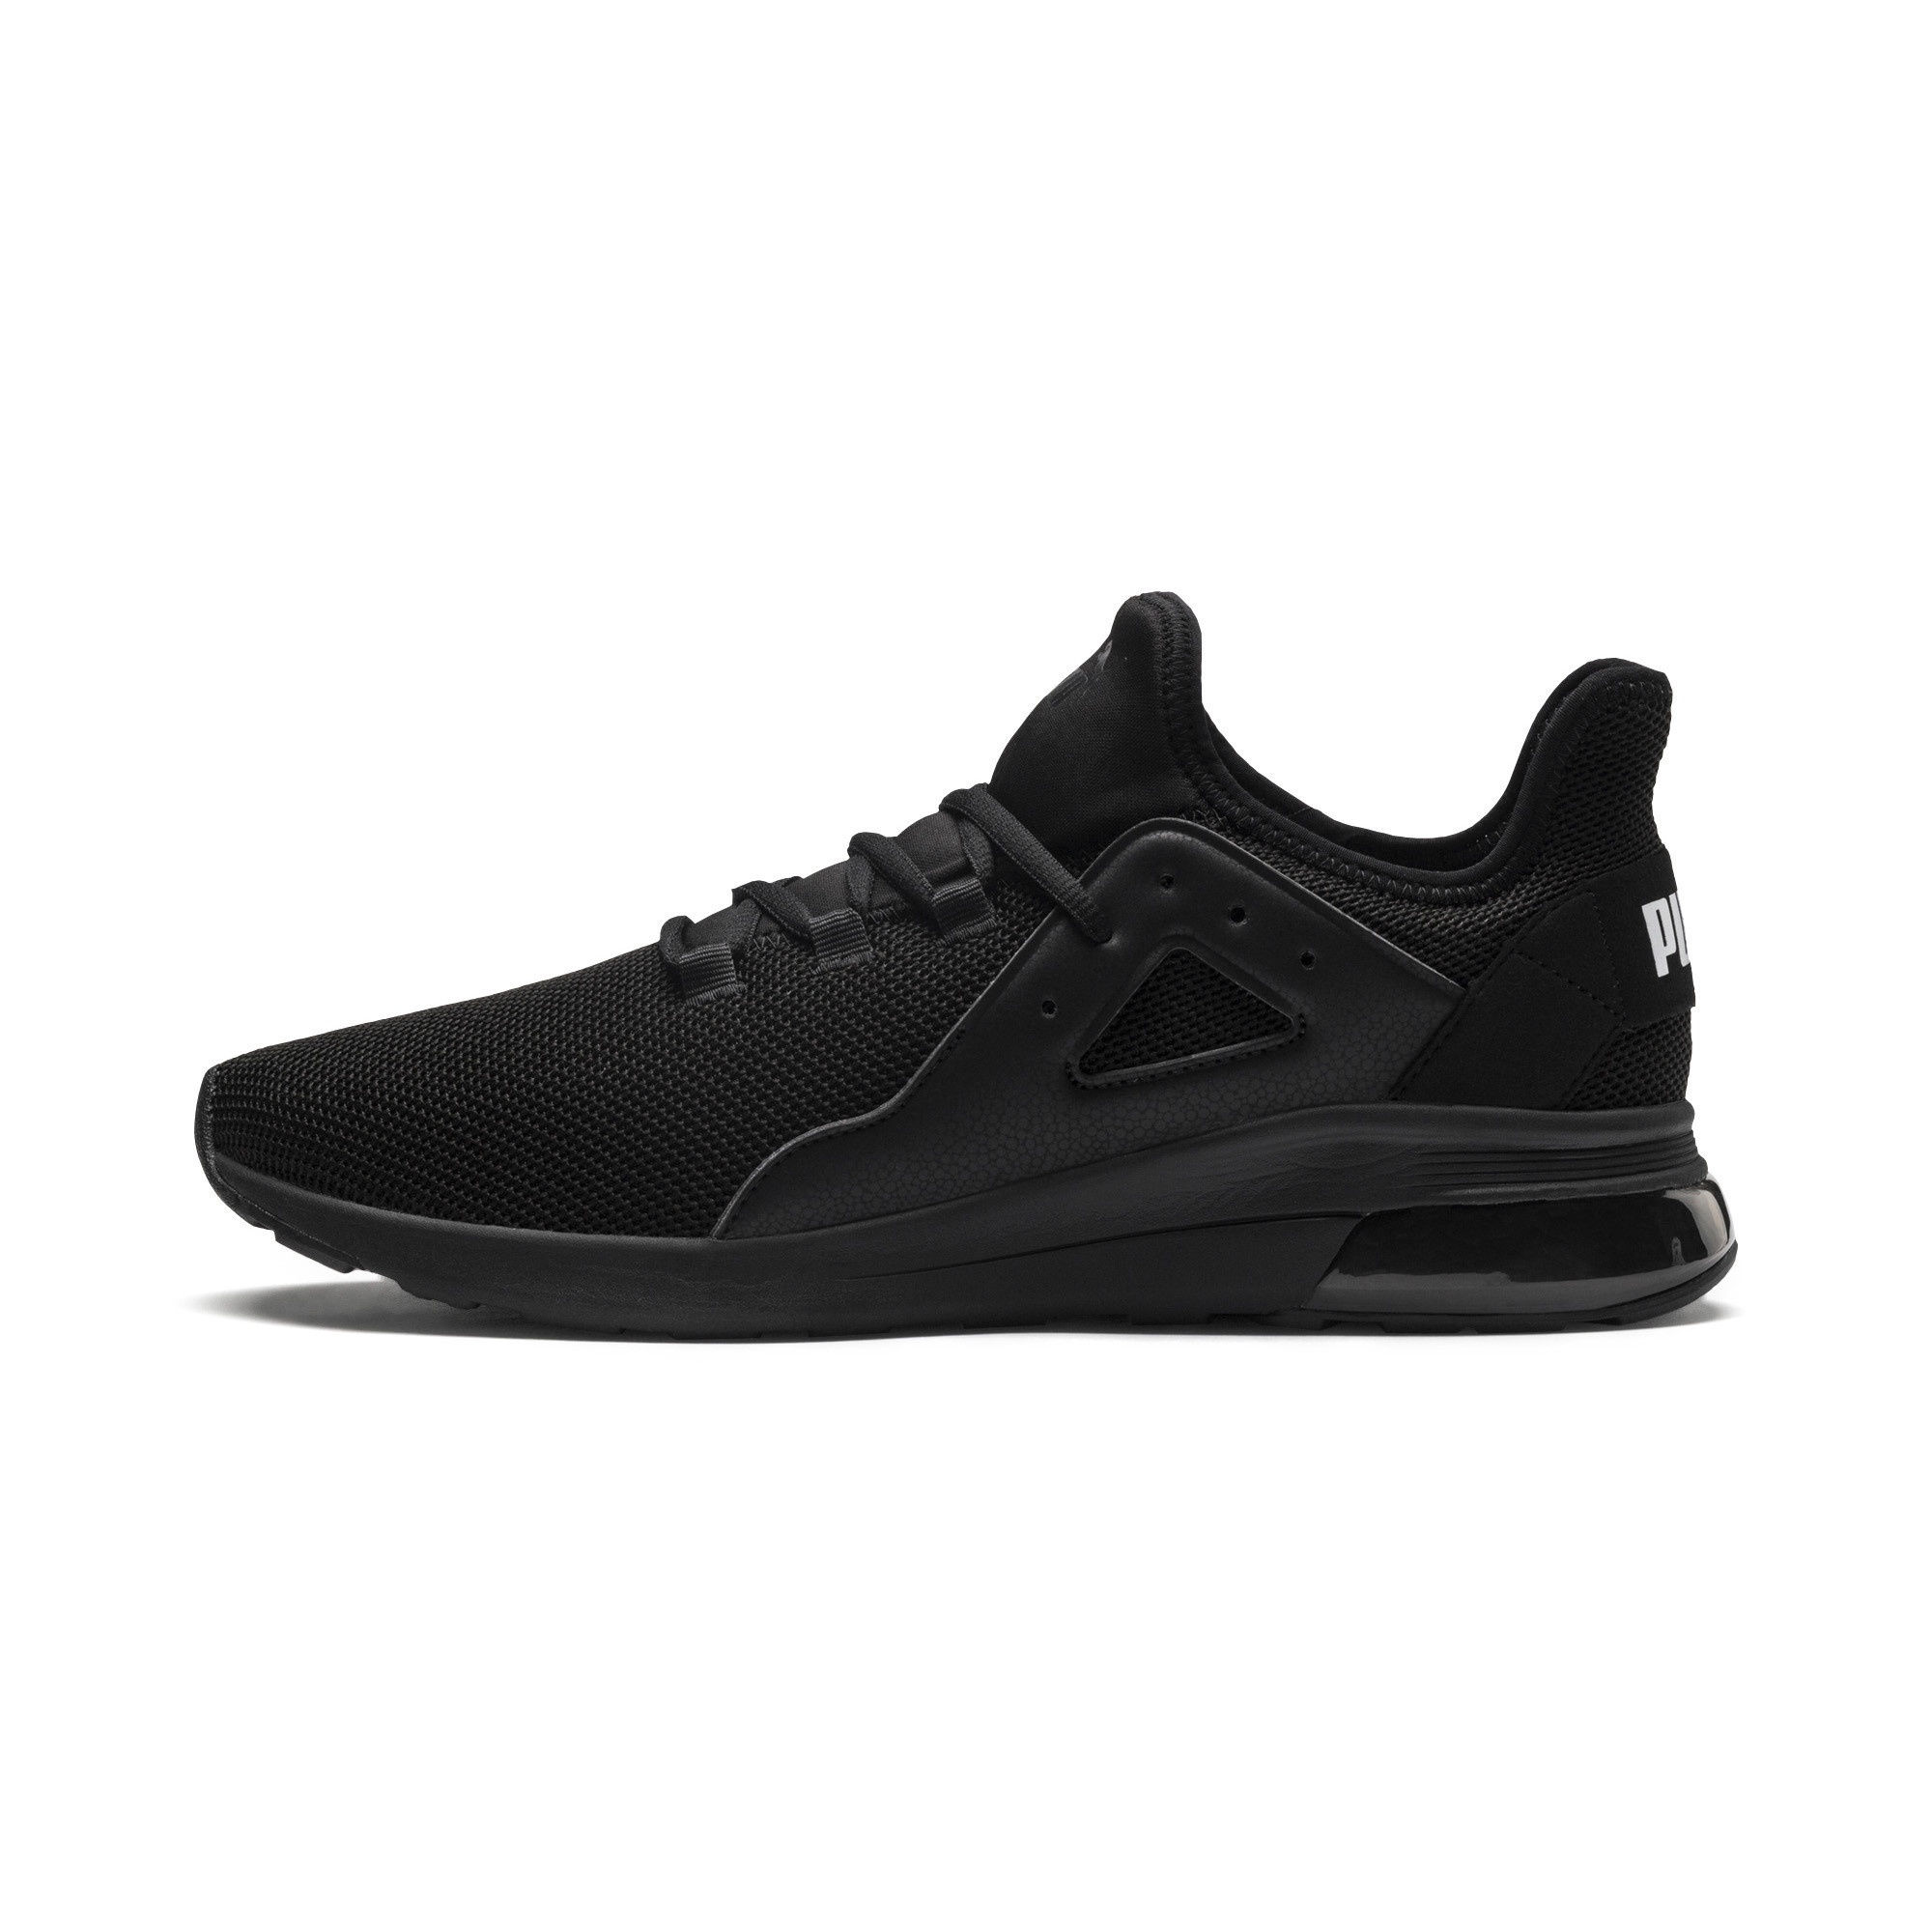 PUMA-Electron-Street-Sneakers-Men-Shoe-Basics thumbnail 10